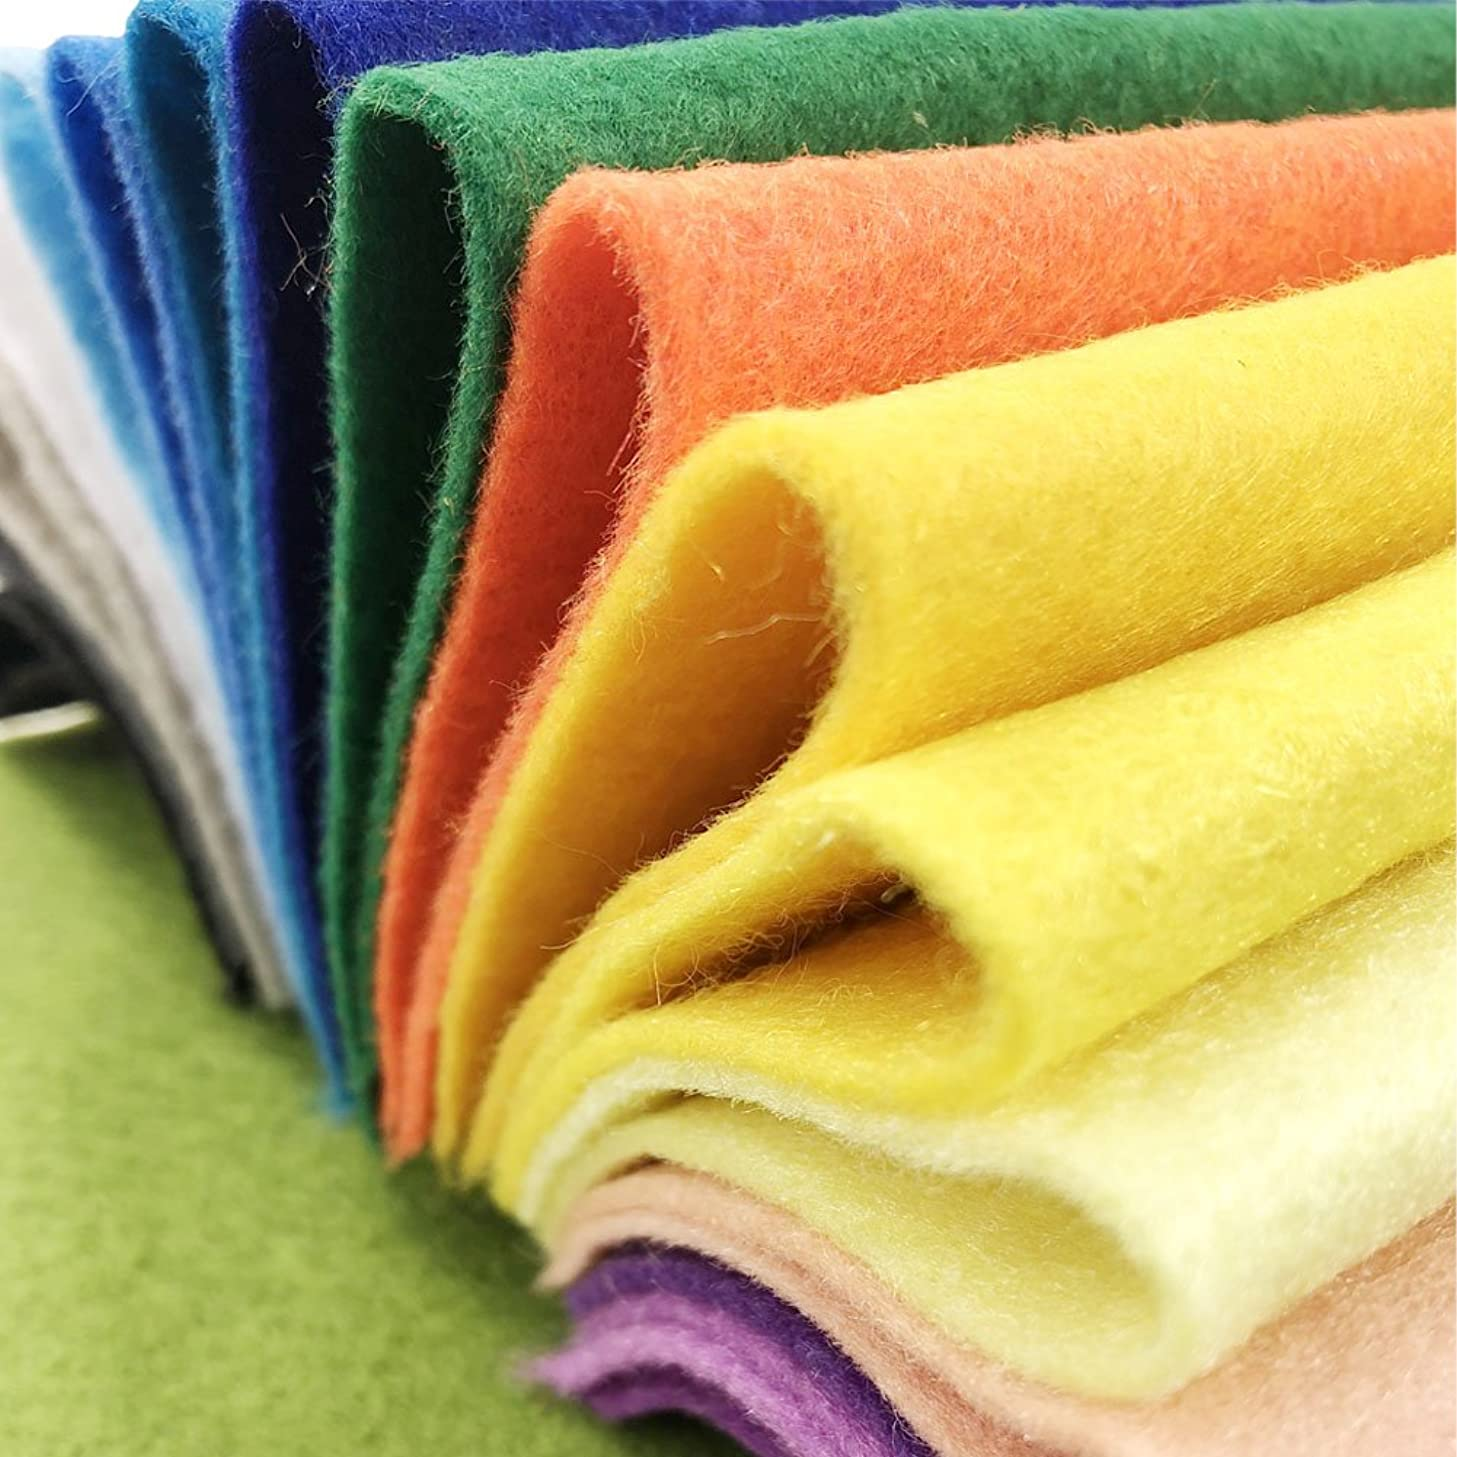 AiMay 50pcs Soft Felt Fabric Pack Felt Squares Sheets for DIY Craft Assorted Colors 1.4mm Thickness (15 cm x 15 cm)